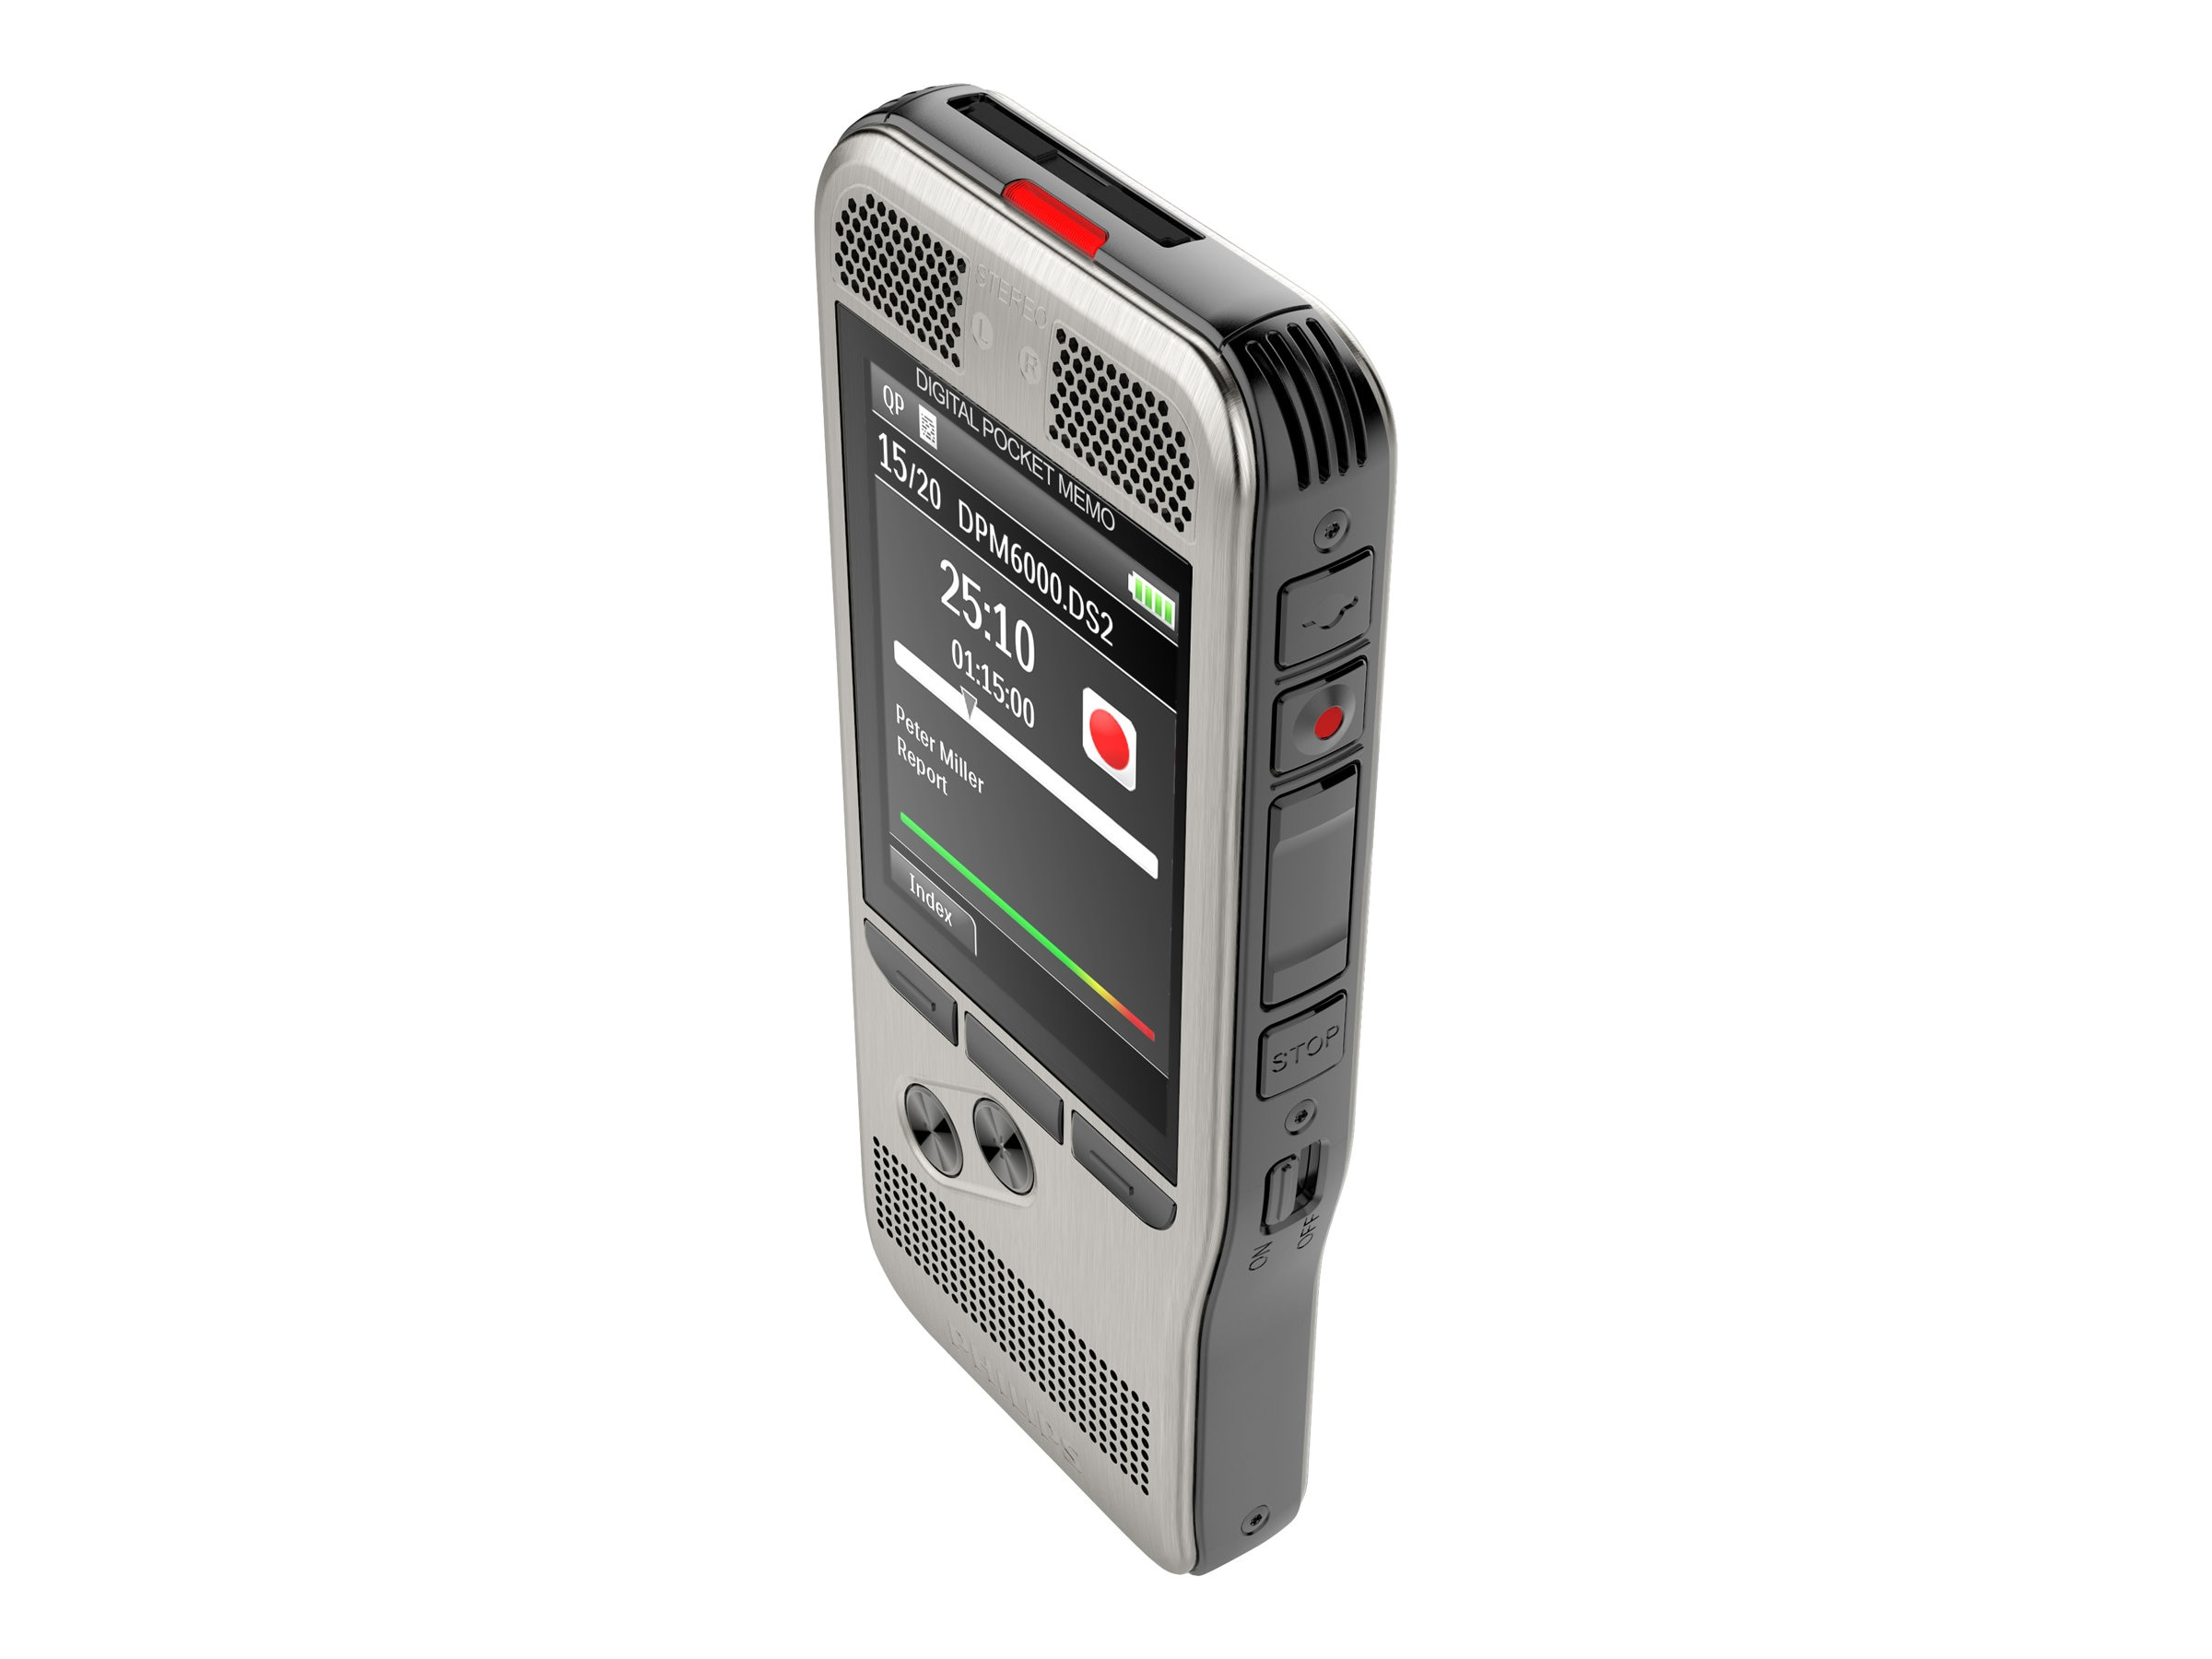 Philips Digital Pocket Memo Recorder, DPM6700